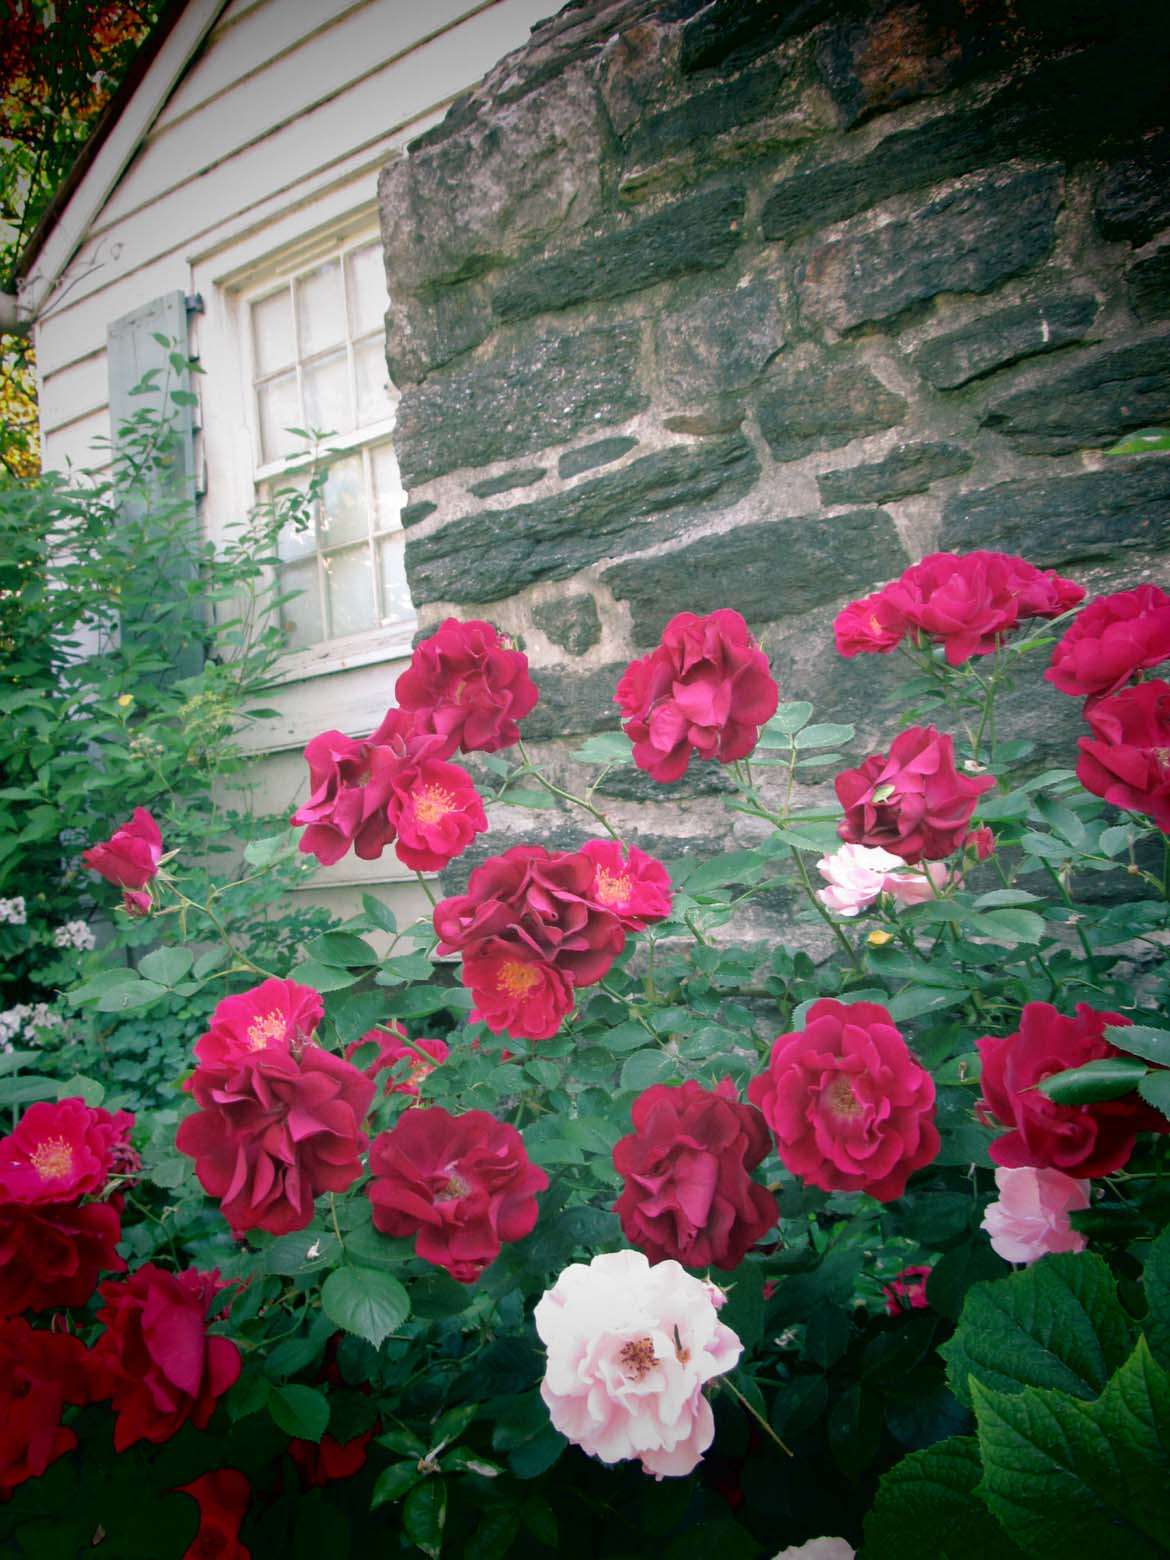 Roses blooming in front of the Summer Kitchen of the Dyckman Farmhouse Museum.